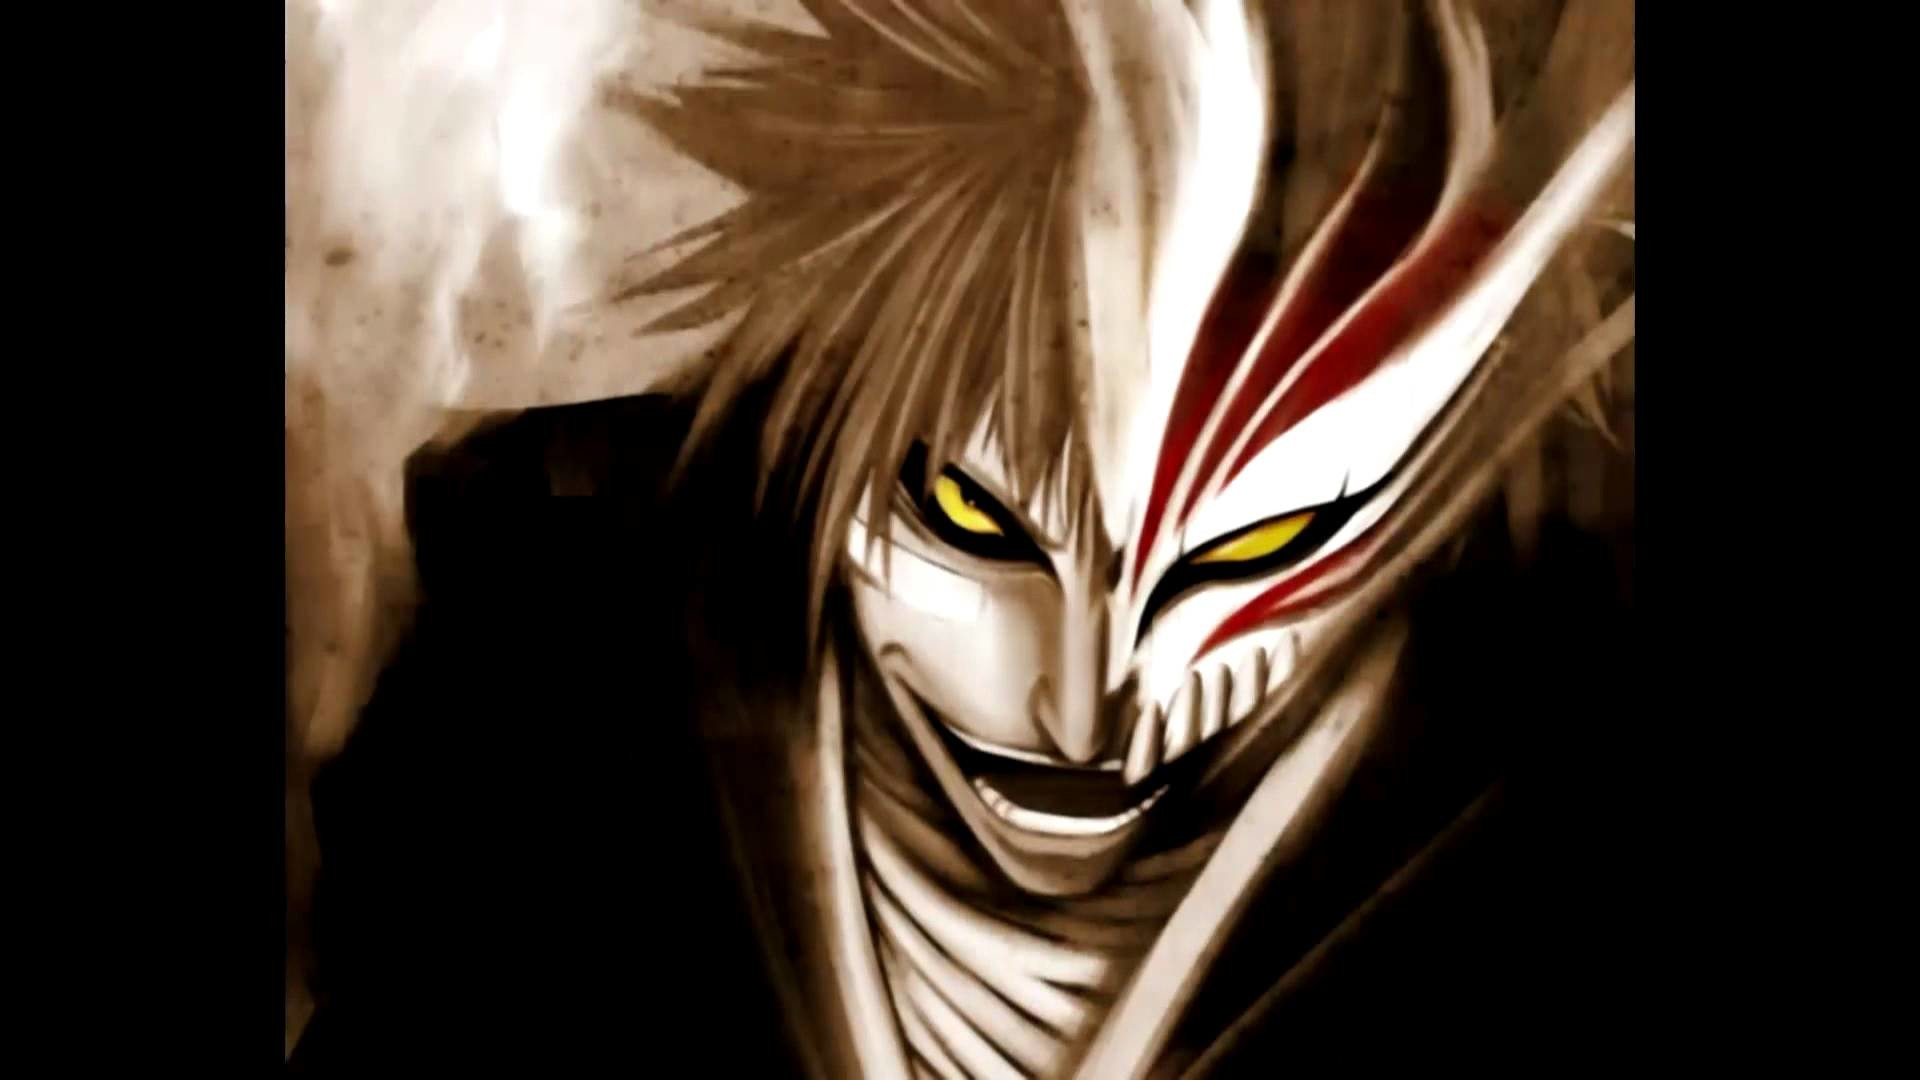 Badass anime wallpapers 60 images - Anime character wallpaper ...